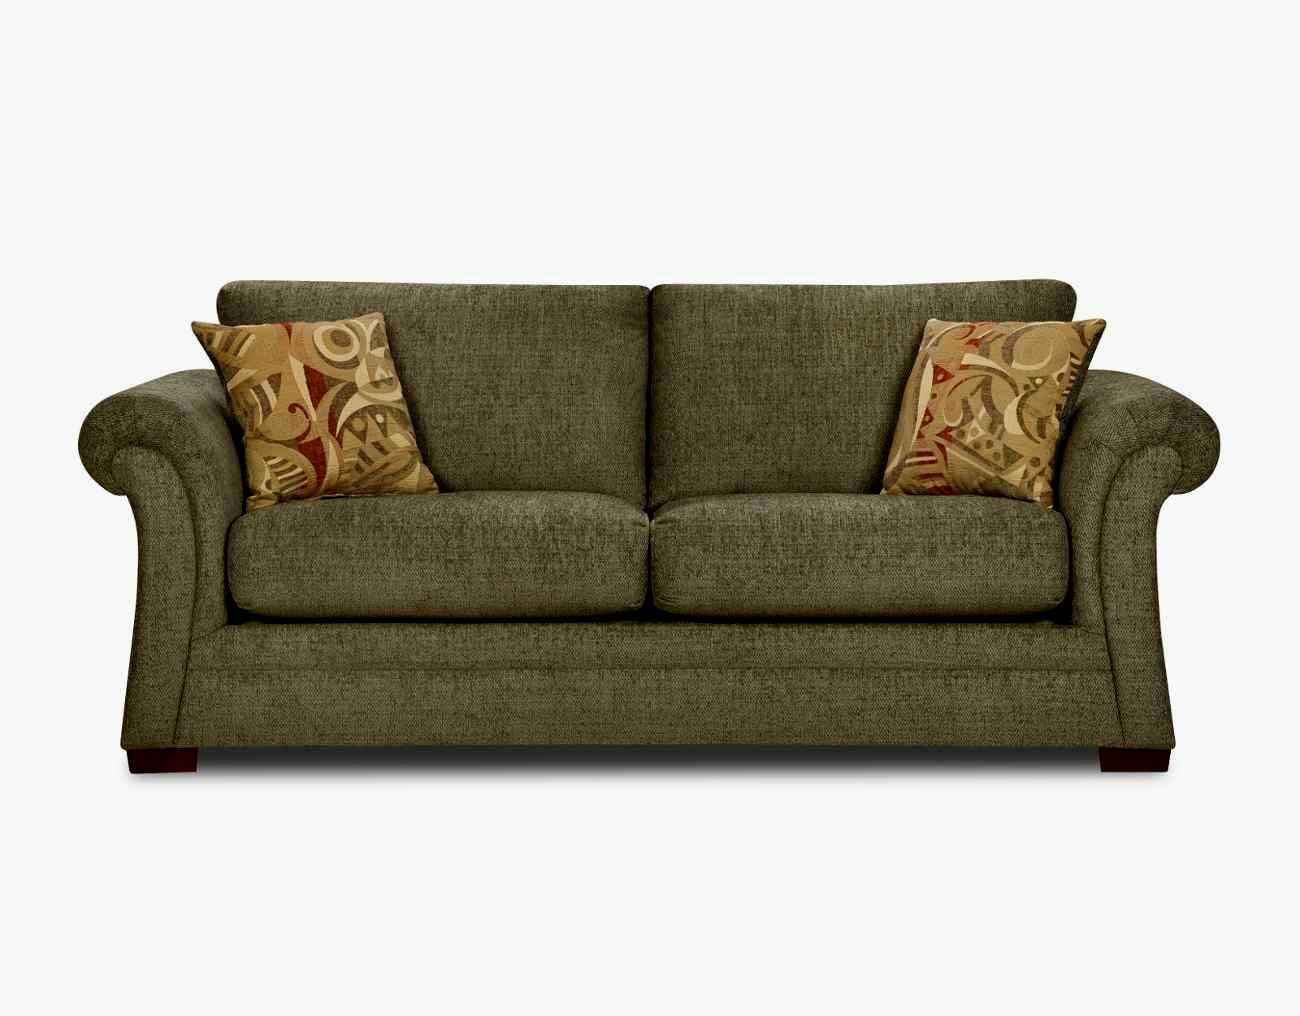 elegant sleeper sofa sectional concept-Fancy Sleeper sofa Sectional Concept